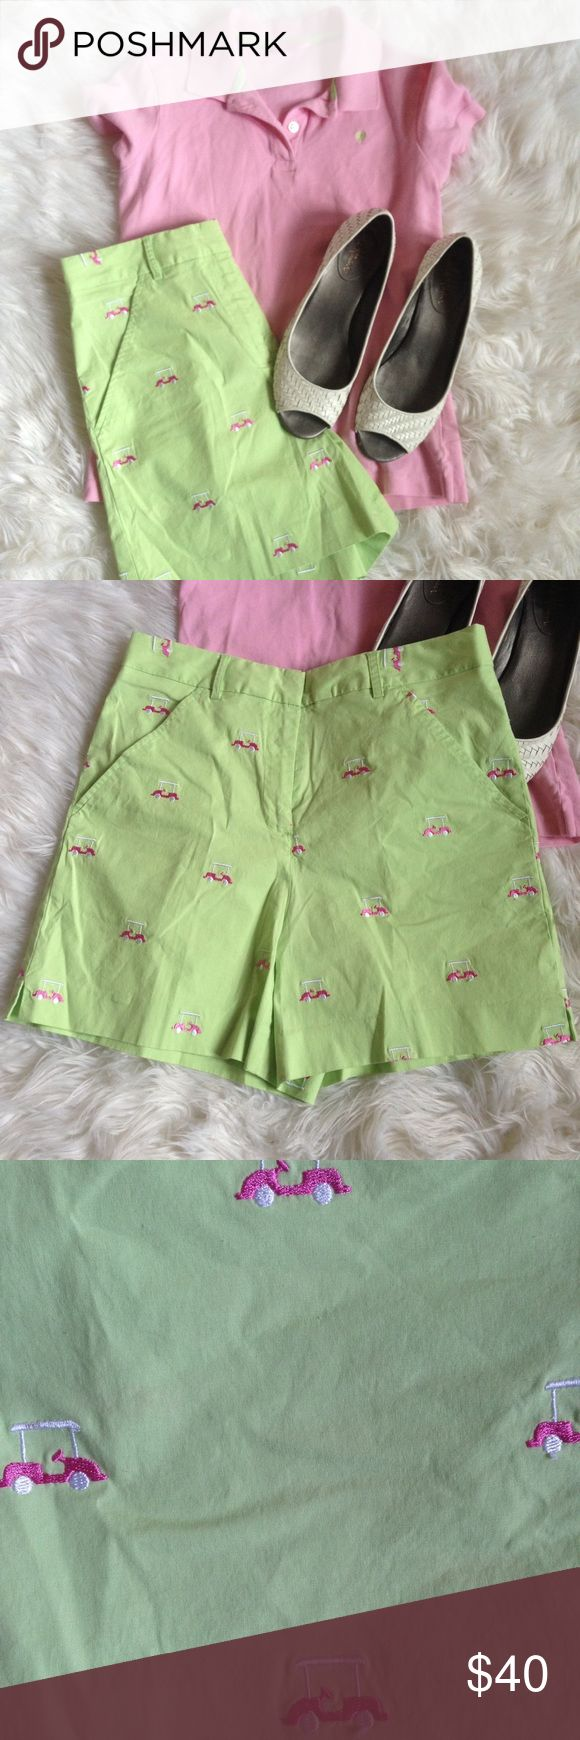 Lilly Pulitzer Green Shorts Embroidery Golf Carts Lilly Pulitzer Lime Green Shorts Embroidery with Golf Carts. High waisted. So stinking cute! Size 4. Please ask questions! Lilly Pulitzer Shorts